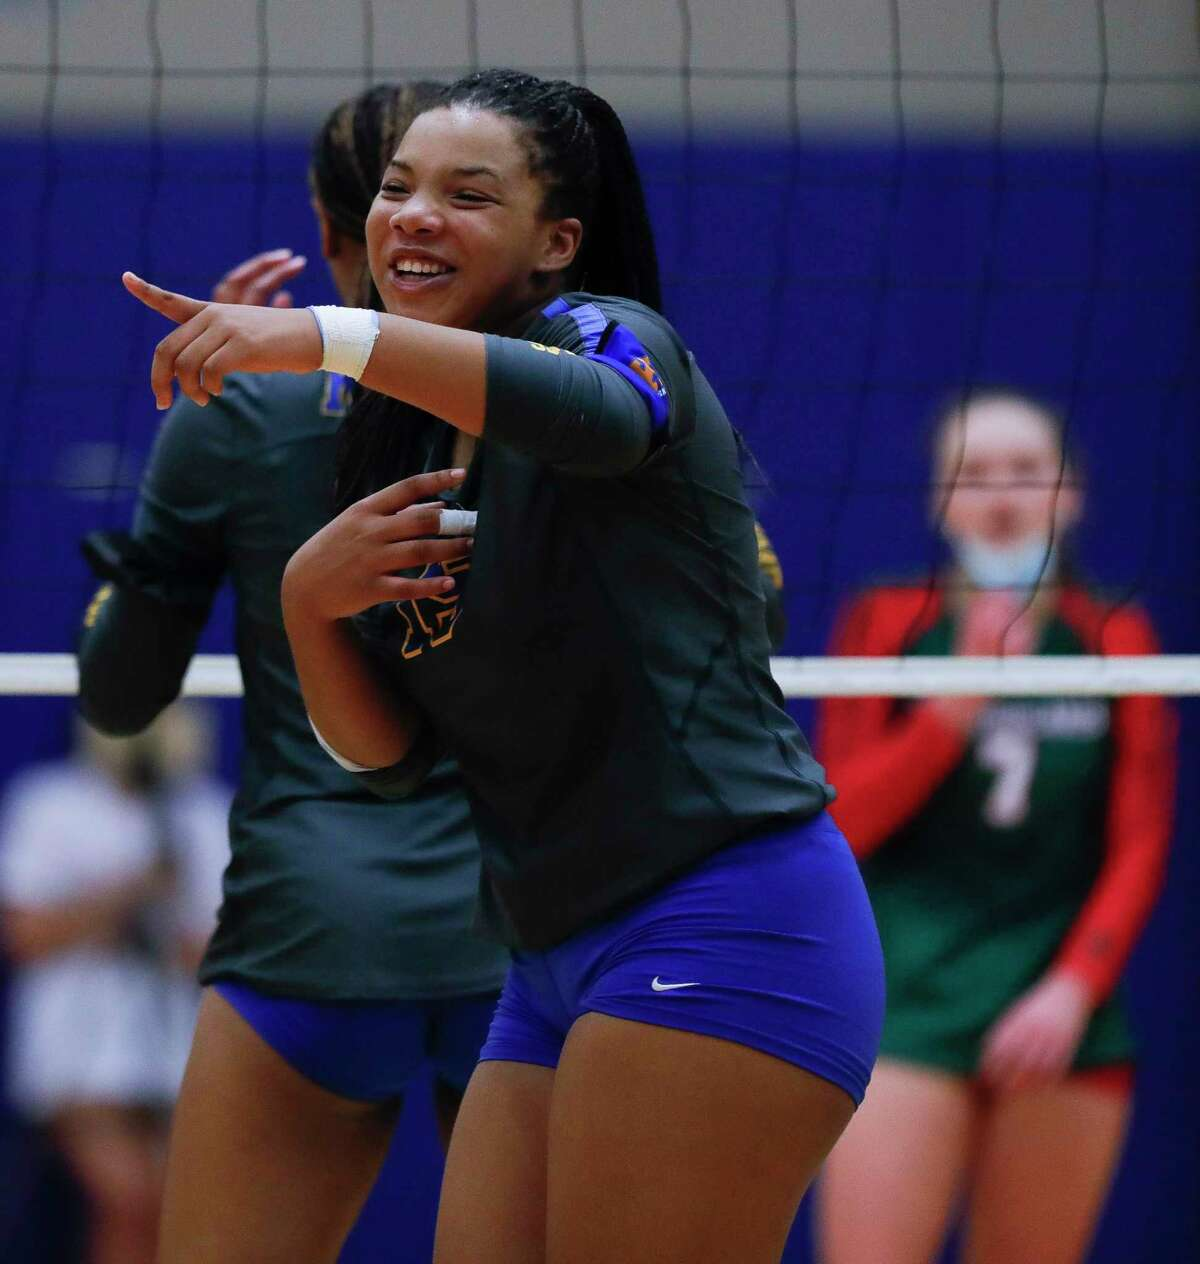 The Greater Houston Volleyball Coaches Association announced the 2021 preseason teams for classifications 6A-4A plus private schools on Aug. 10. Klein High's Ariana Brown (15) was named to the Class 6A preseason team.